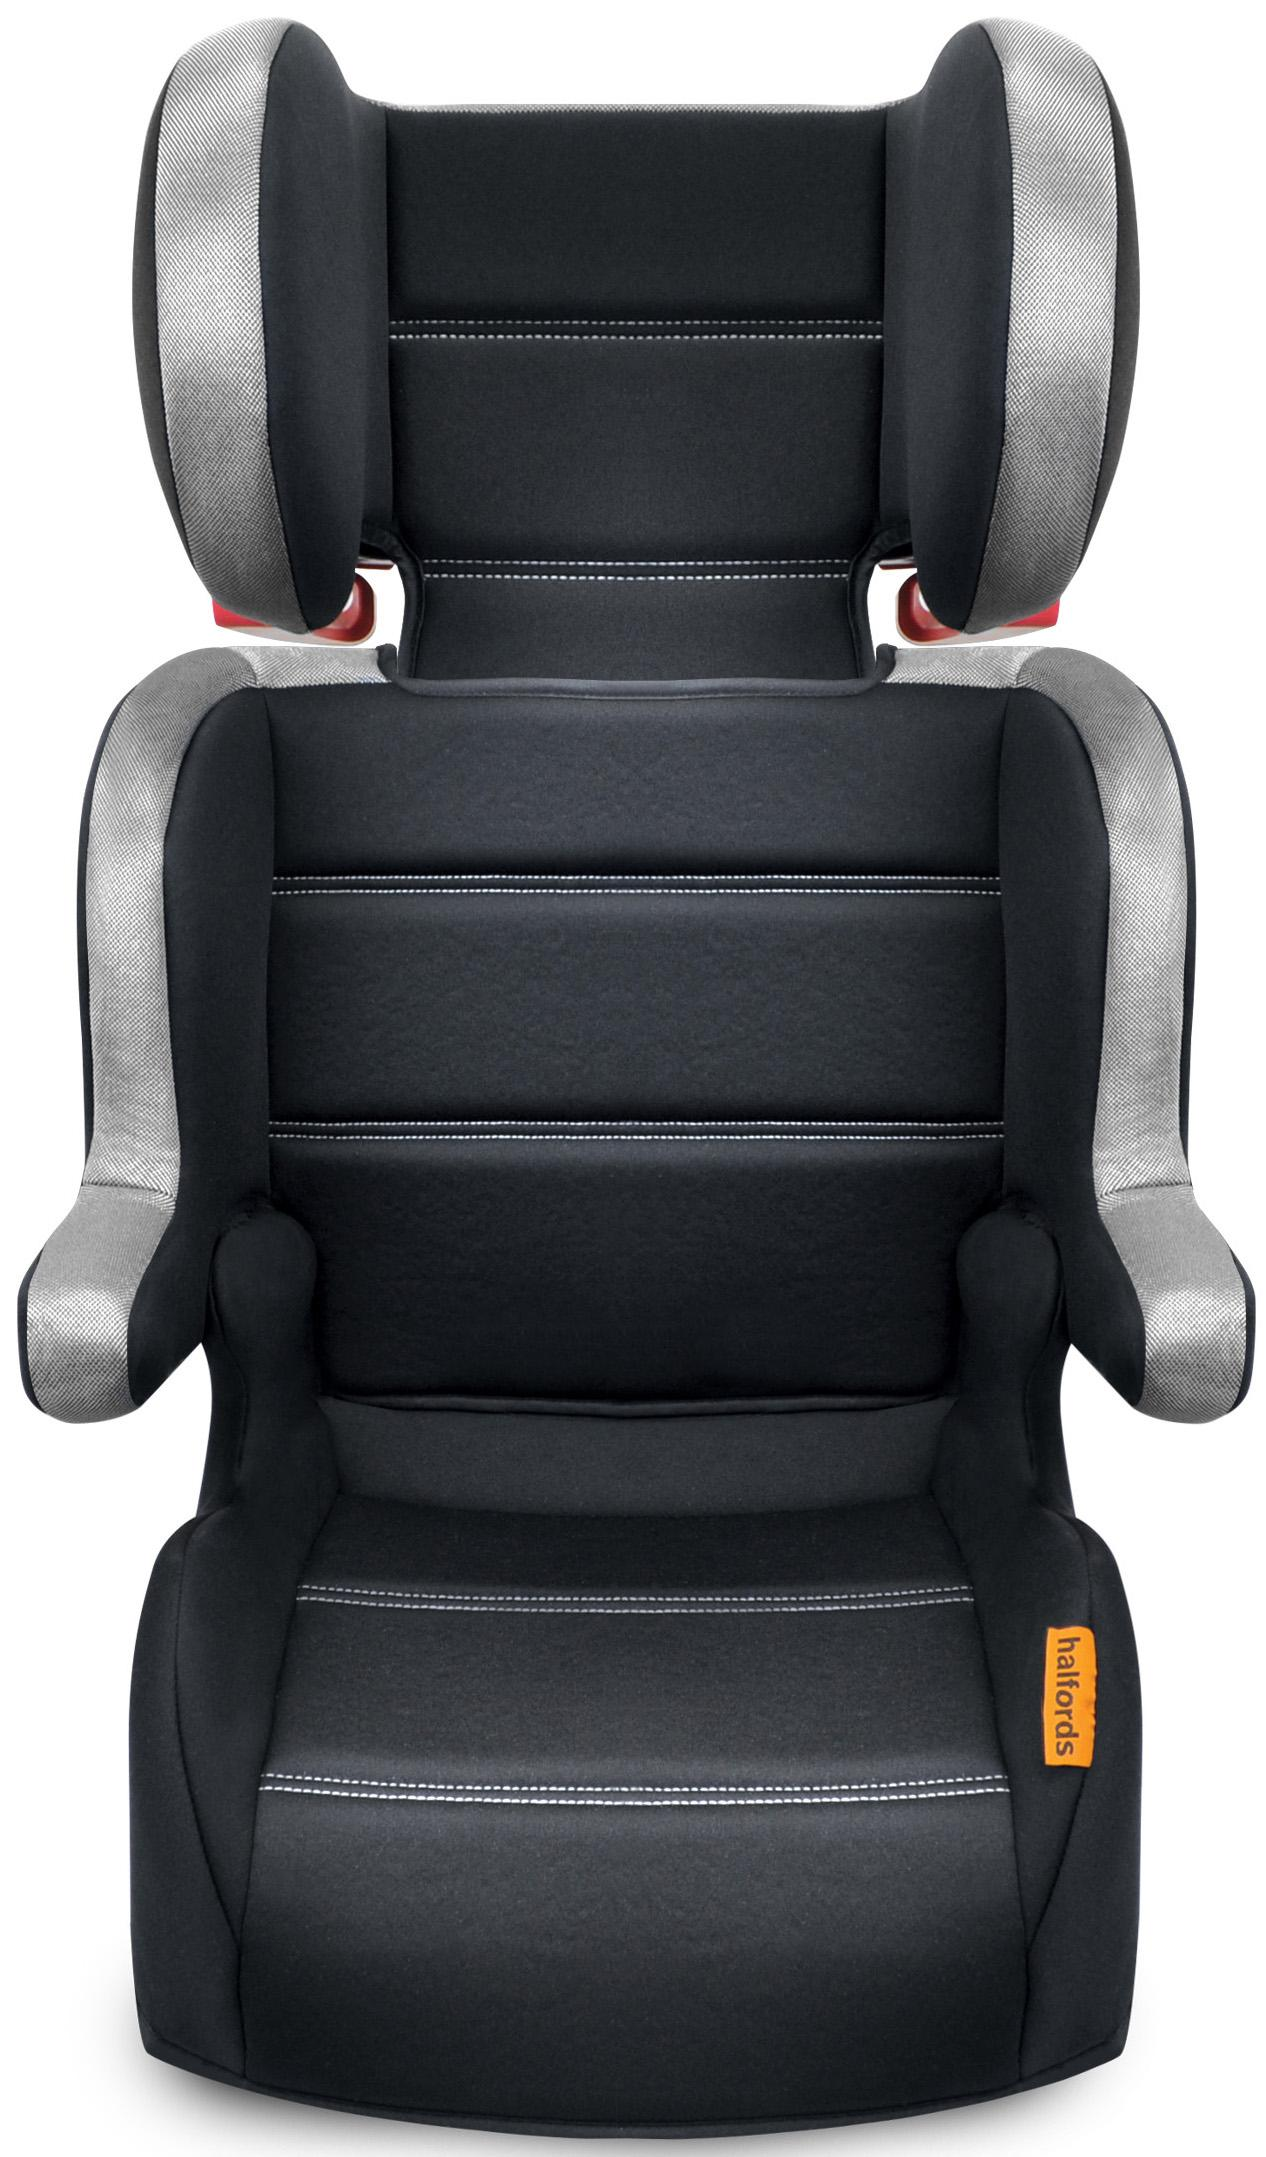 halfords kids child lightweight travel protector folding highback booster seat ebay. Black Bedroom Furniture Sets. Home Design Ideas